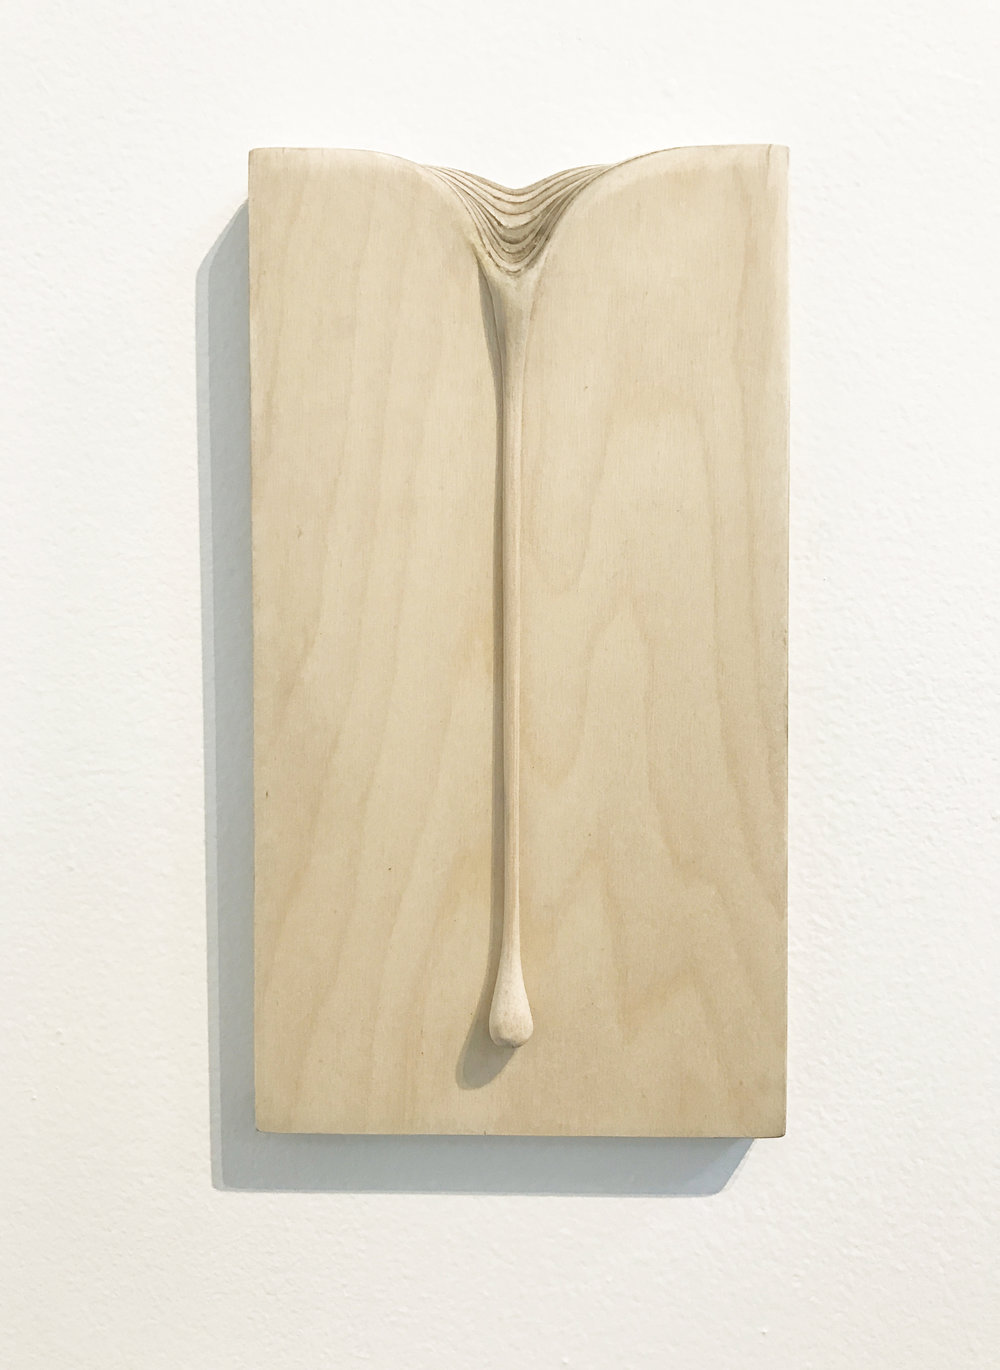 Jason Waterhouse  Driftwood  2017 ply wood and acrylic 22.5 x 13 cm